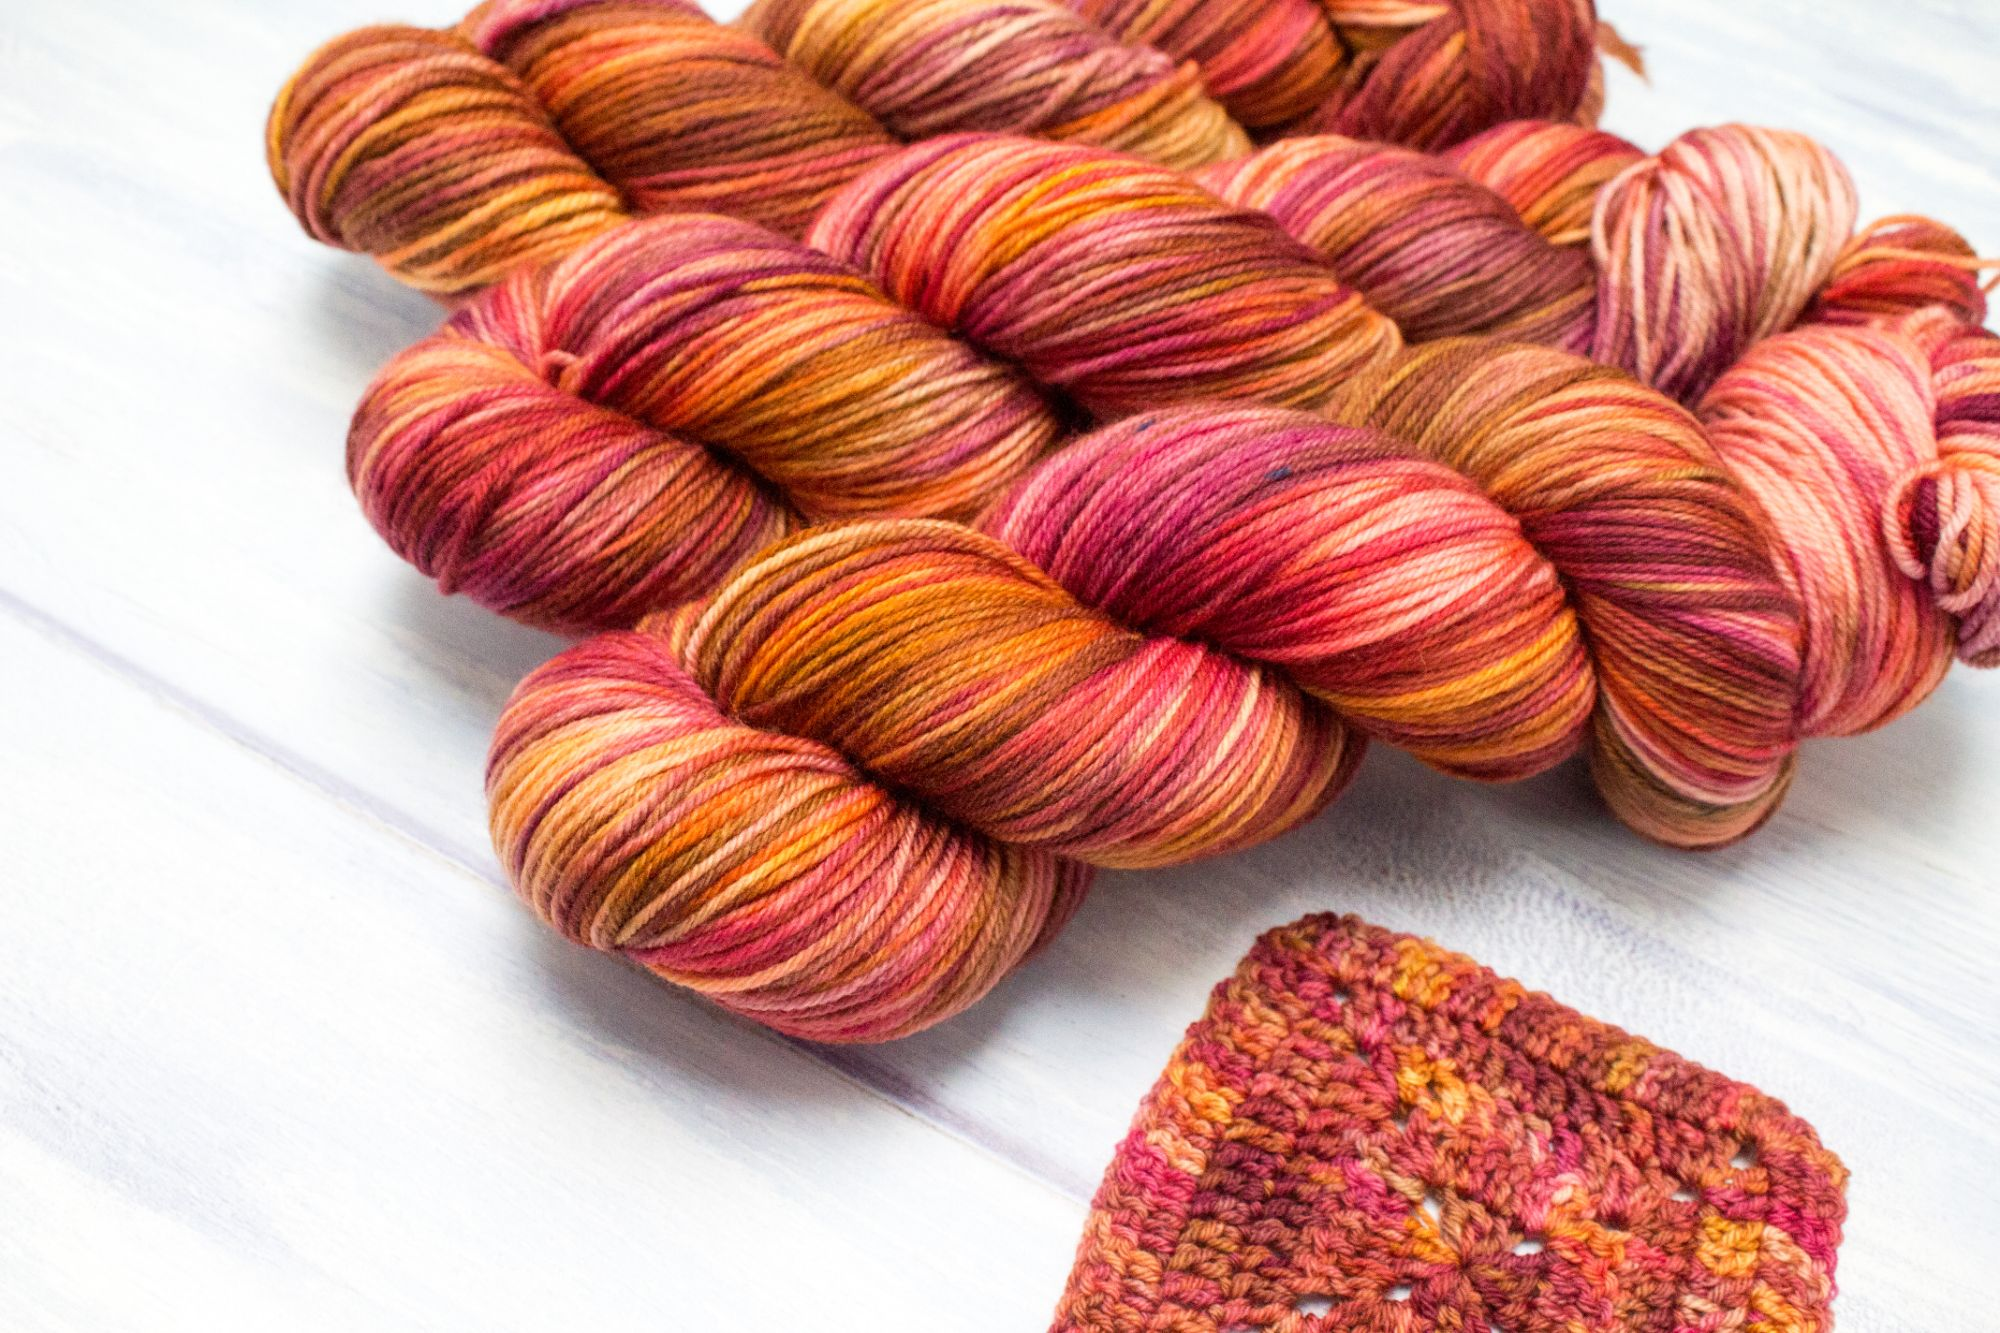 Fiery coloured yarns, with a crochet square in the yarn in the front